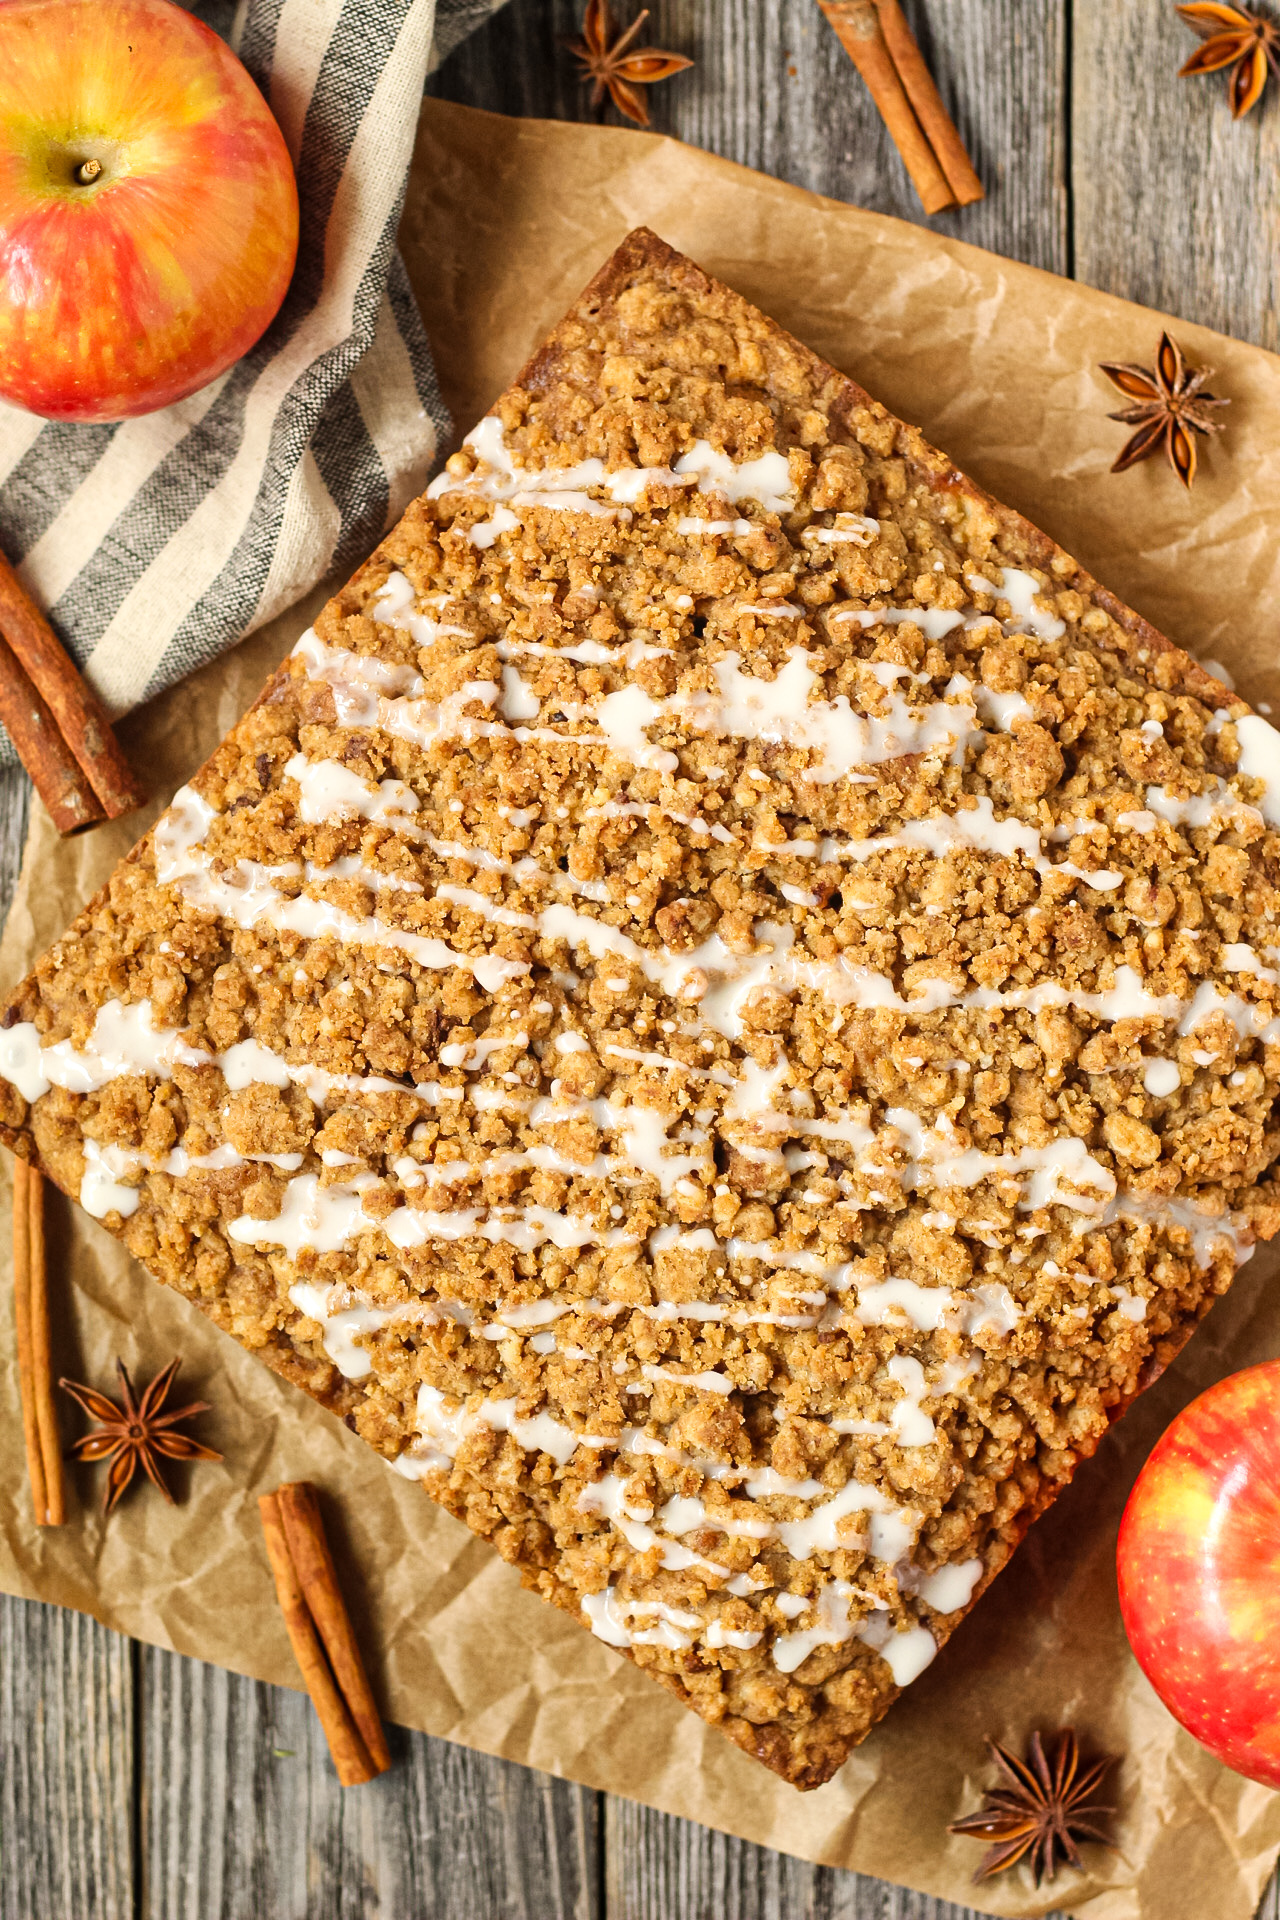 overhead shot of spiced apple crumb cake on parchment paper on top of wooden surface with apples and cinnamon sticks in the perimeter of the shot.